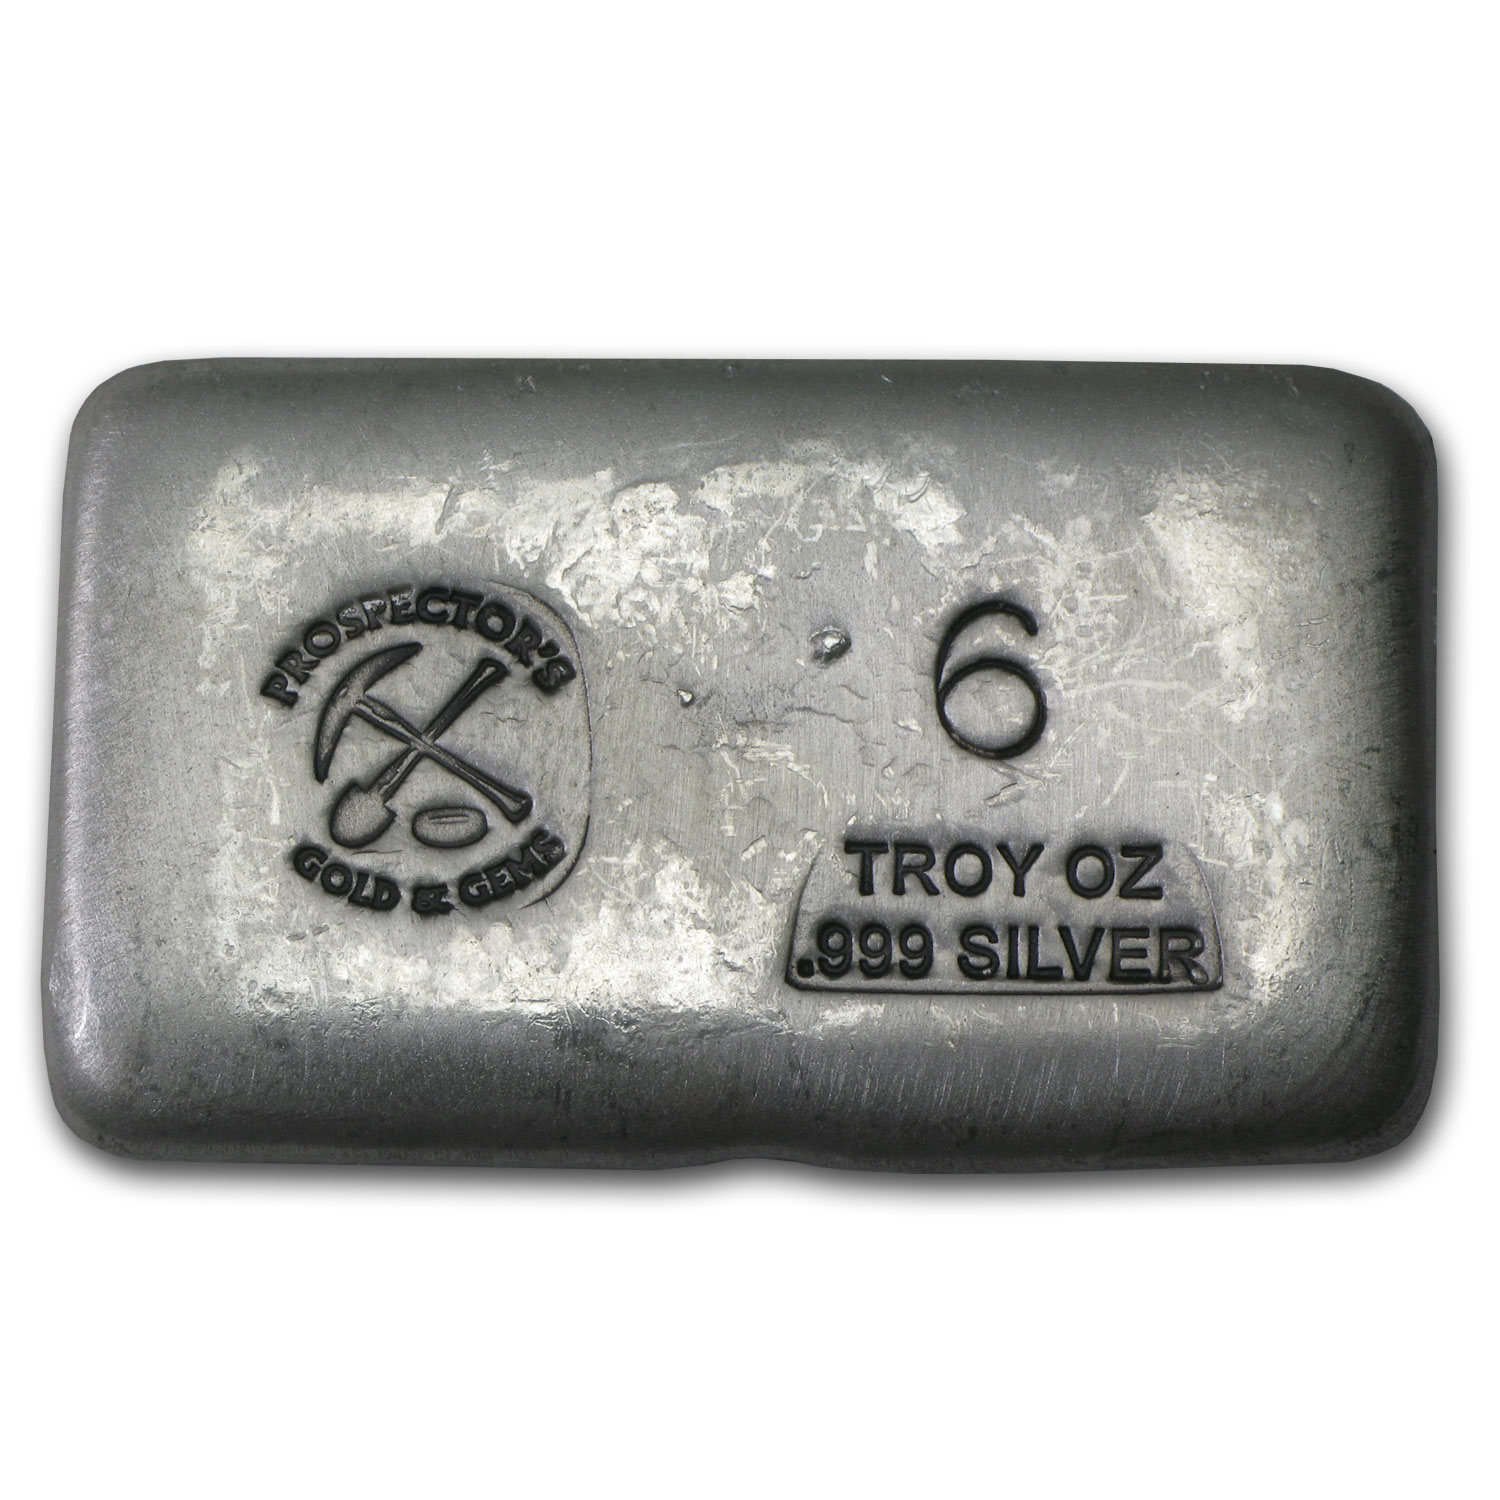 6 oz Silver Bar - Prospector's Gold & Gems